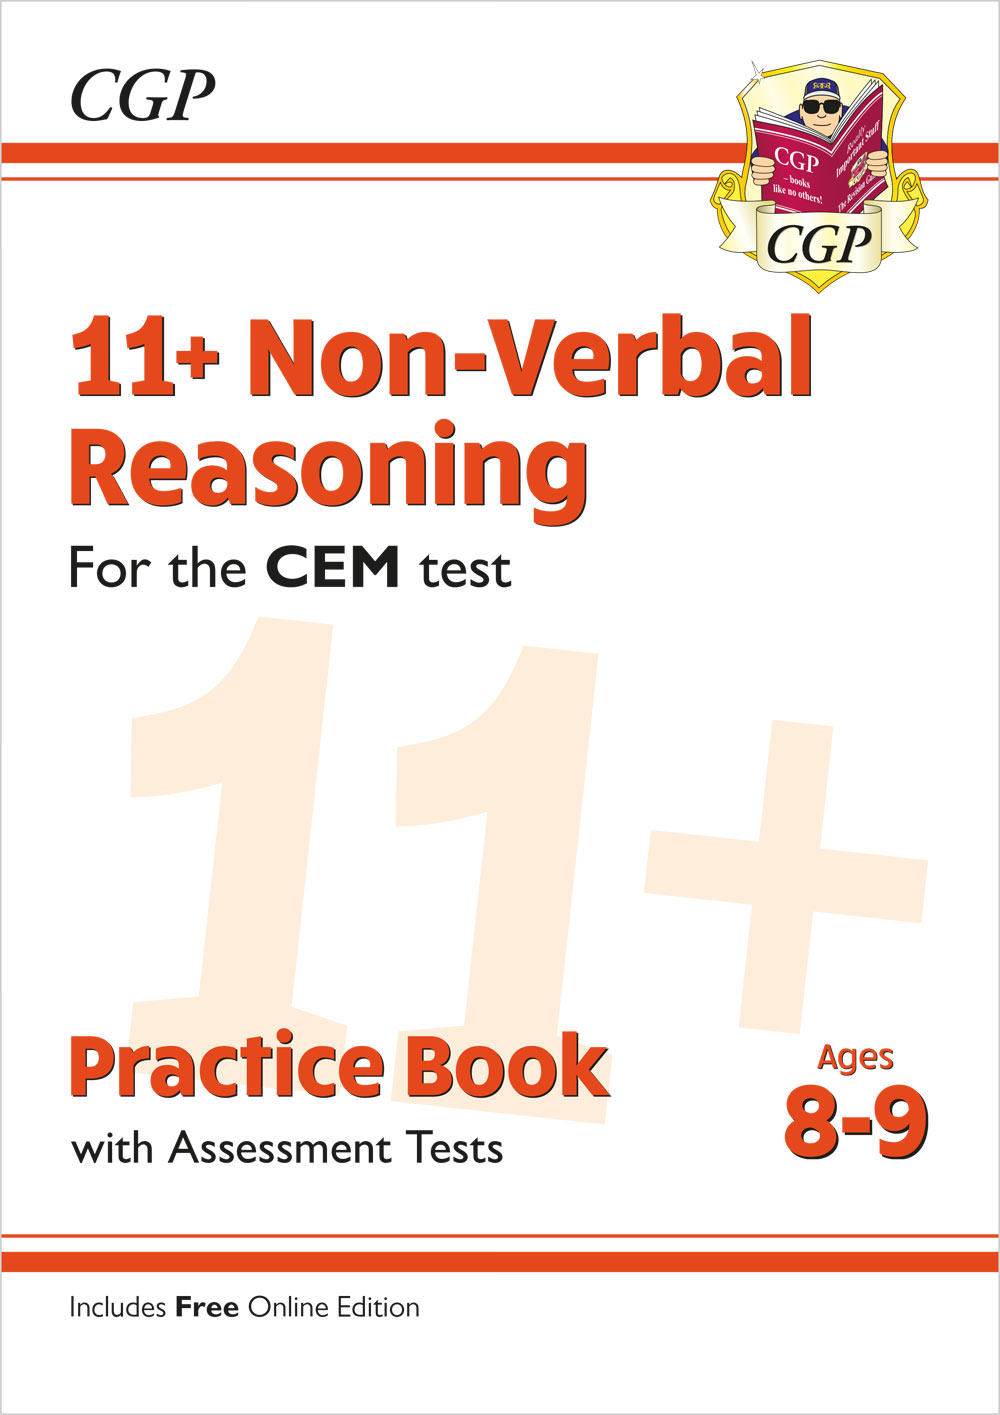 N4QDE2 - 11+ CEM Non-Verbal Reasoning Practice Book & Assessment Tests - Ages 8-9 (with Online Editi